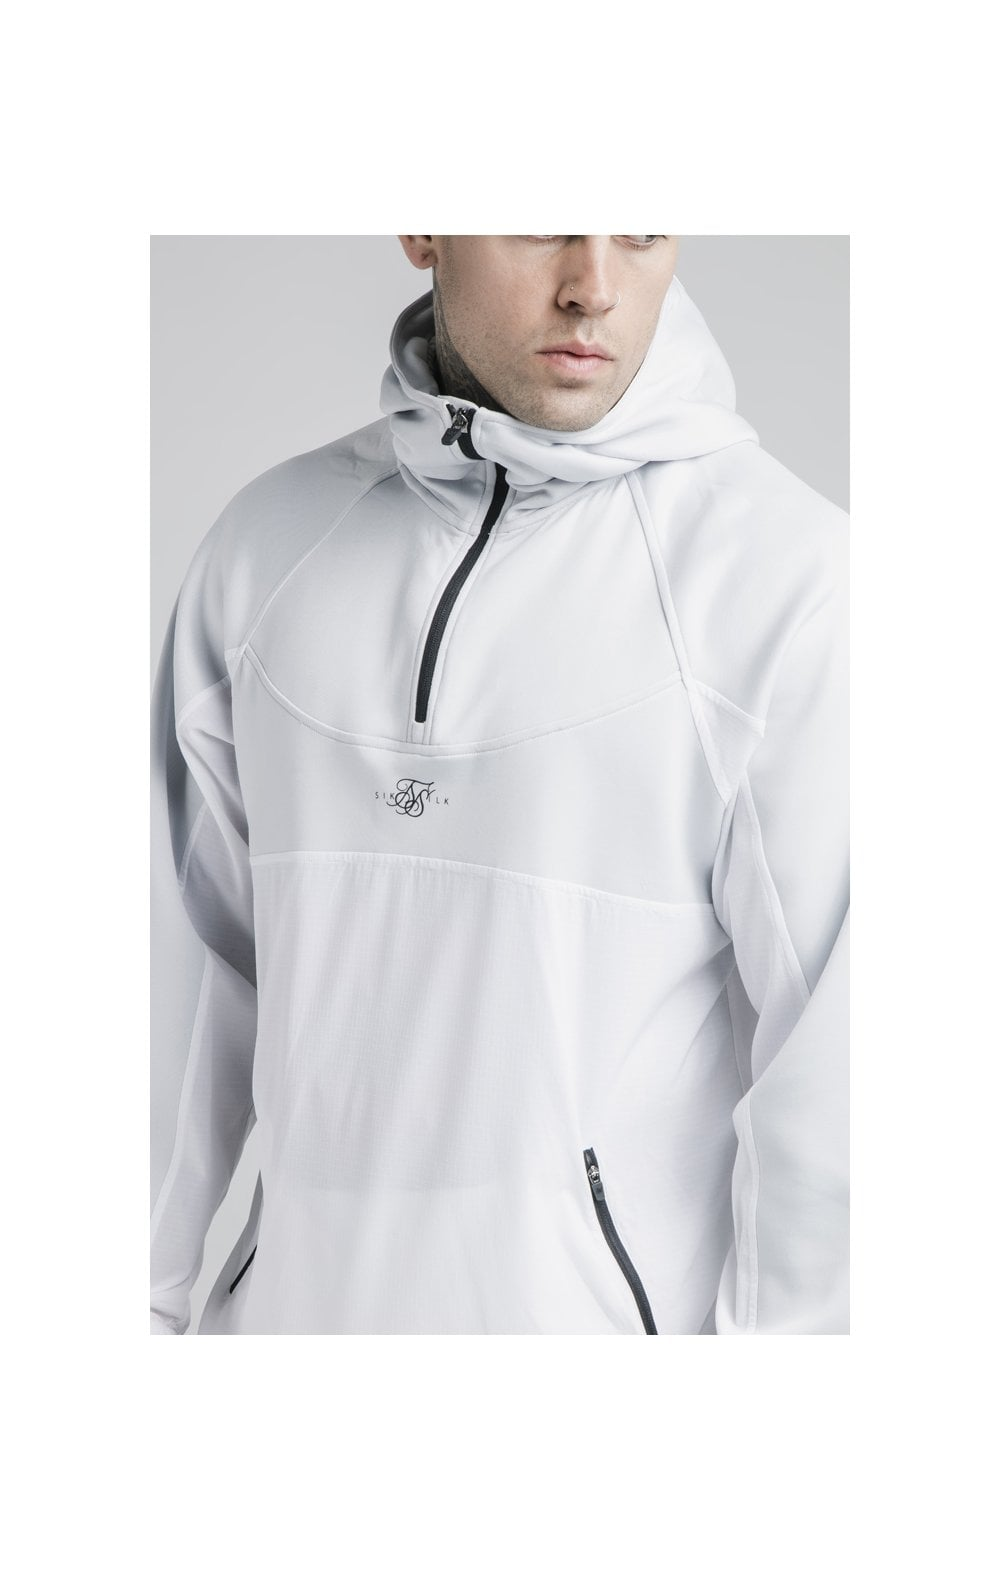 SikSilk Tranquil Quarter Zip Vent Hoodie - Light Blue & White